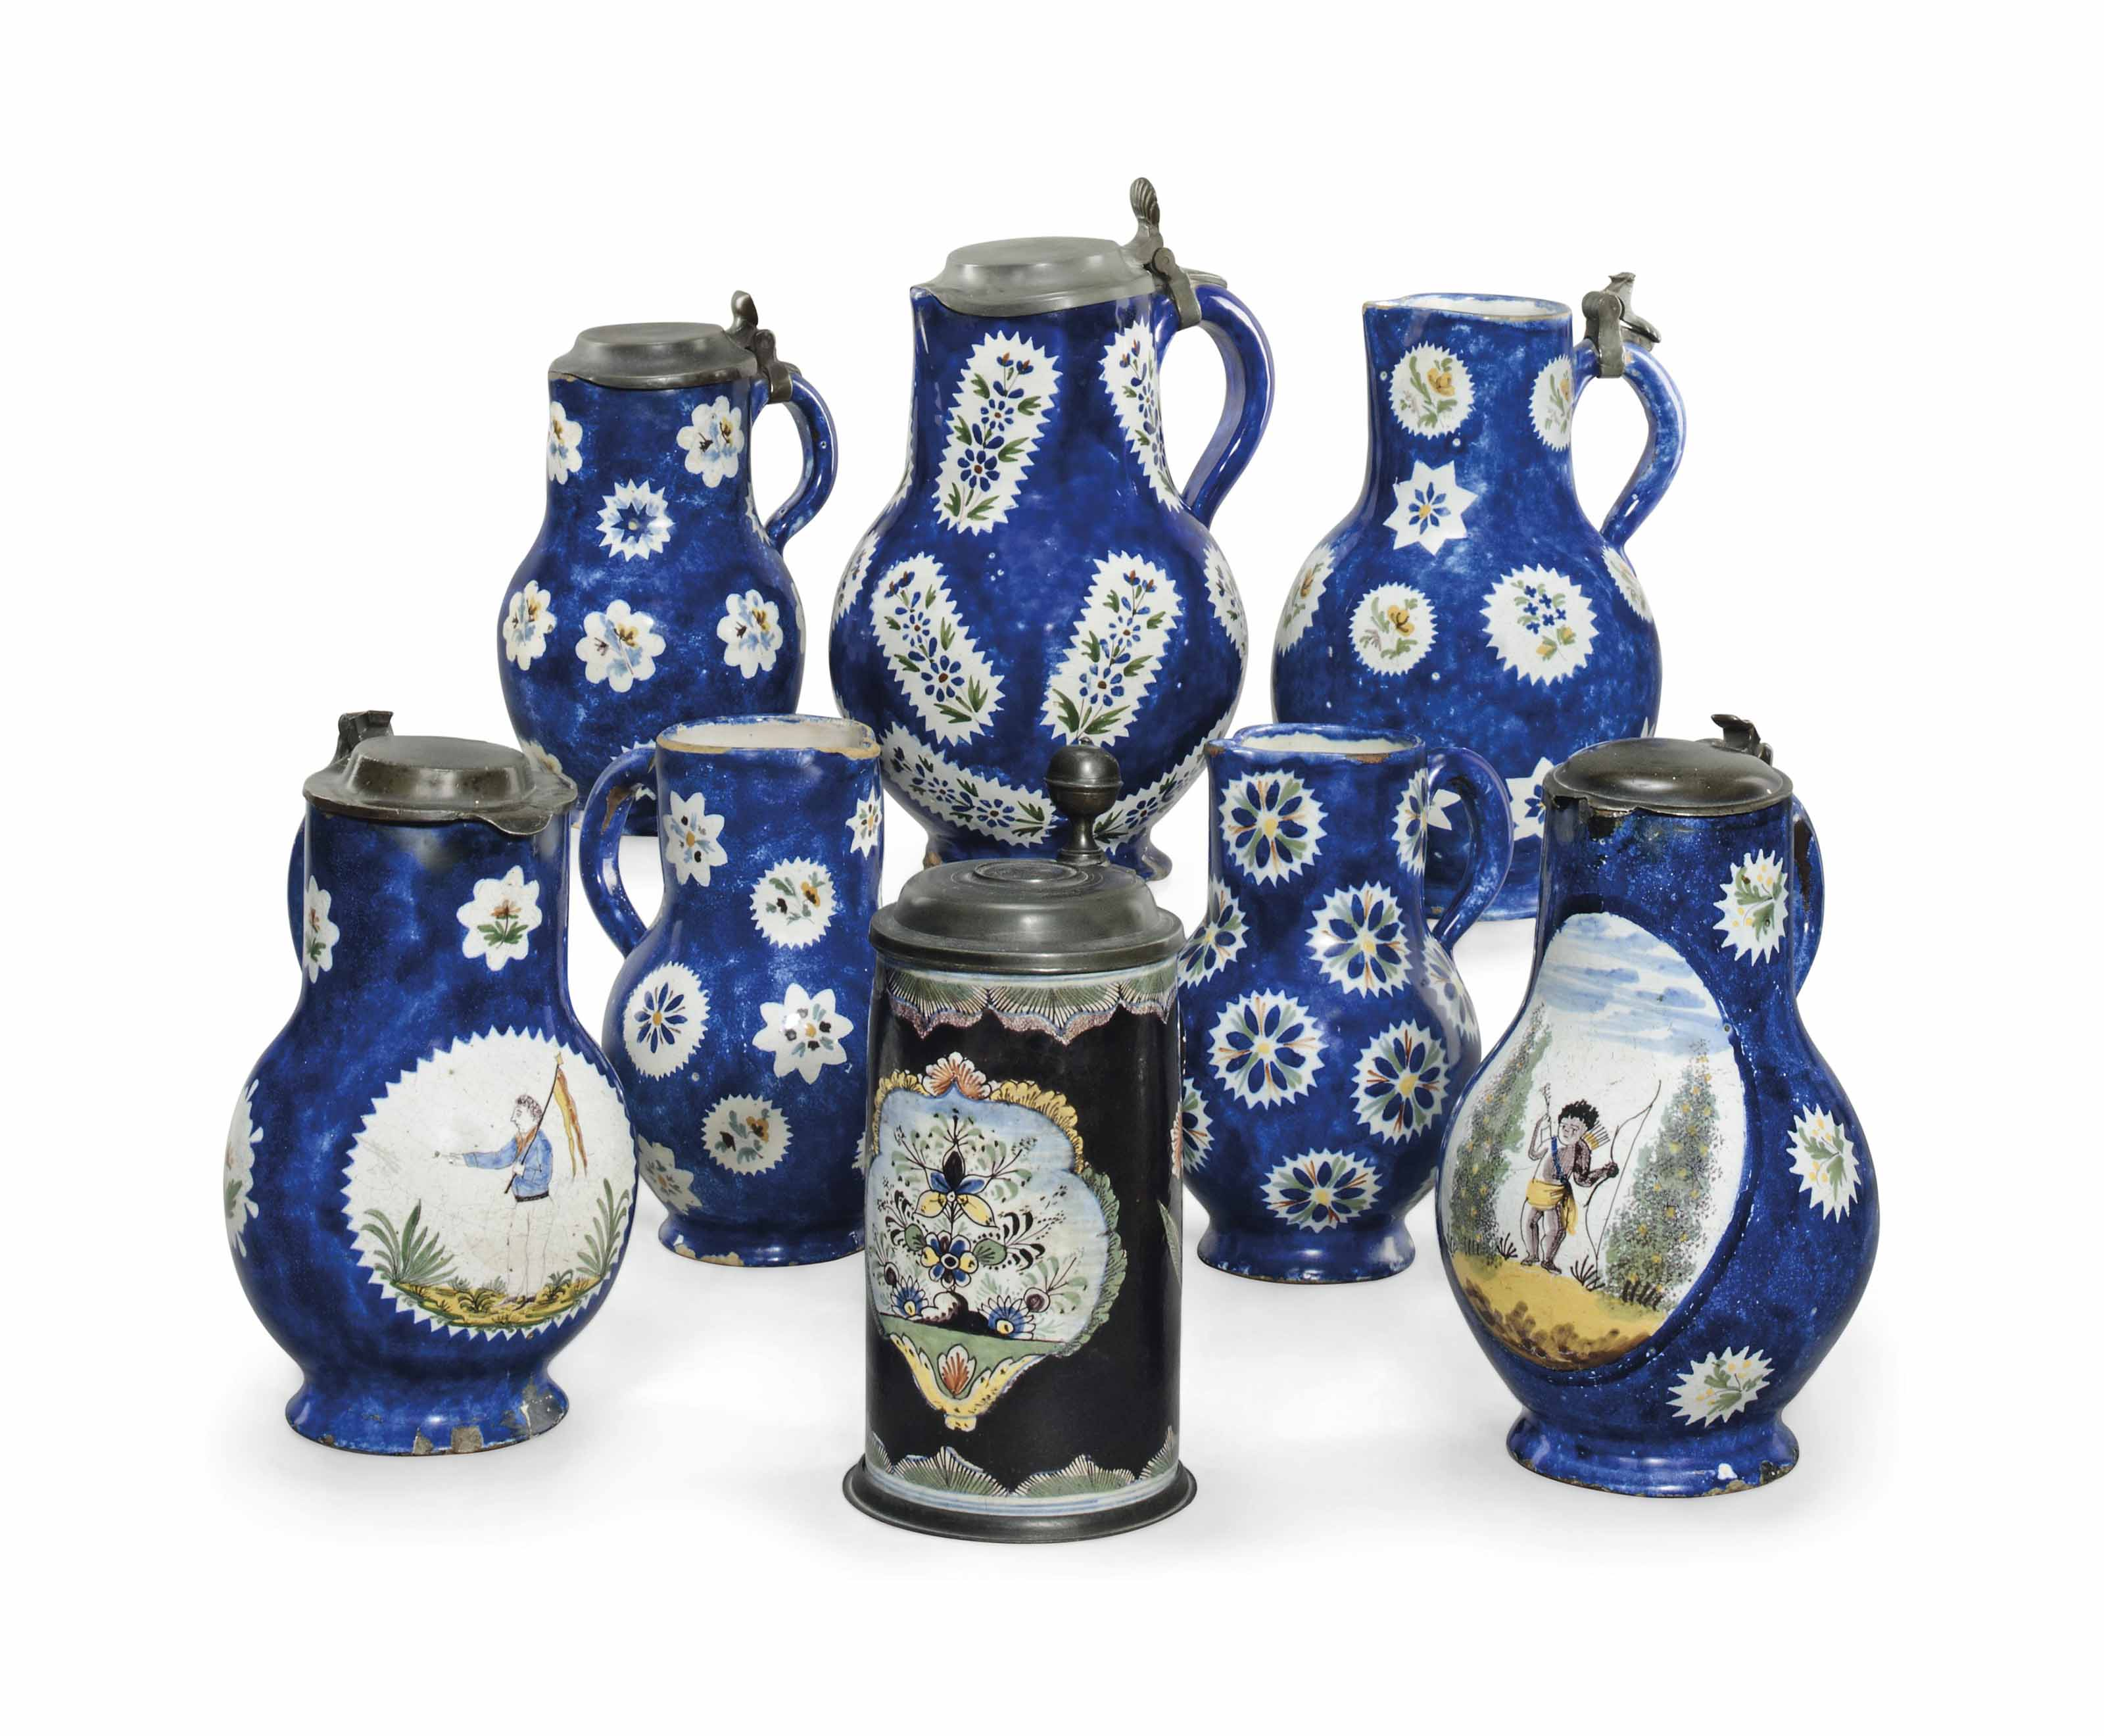 SEVEN BRUSSELS FAIENCE BLUE-GROUND JUGS AND A GERMAN FAYENCE BLACK-GROUND TANKARD